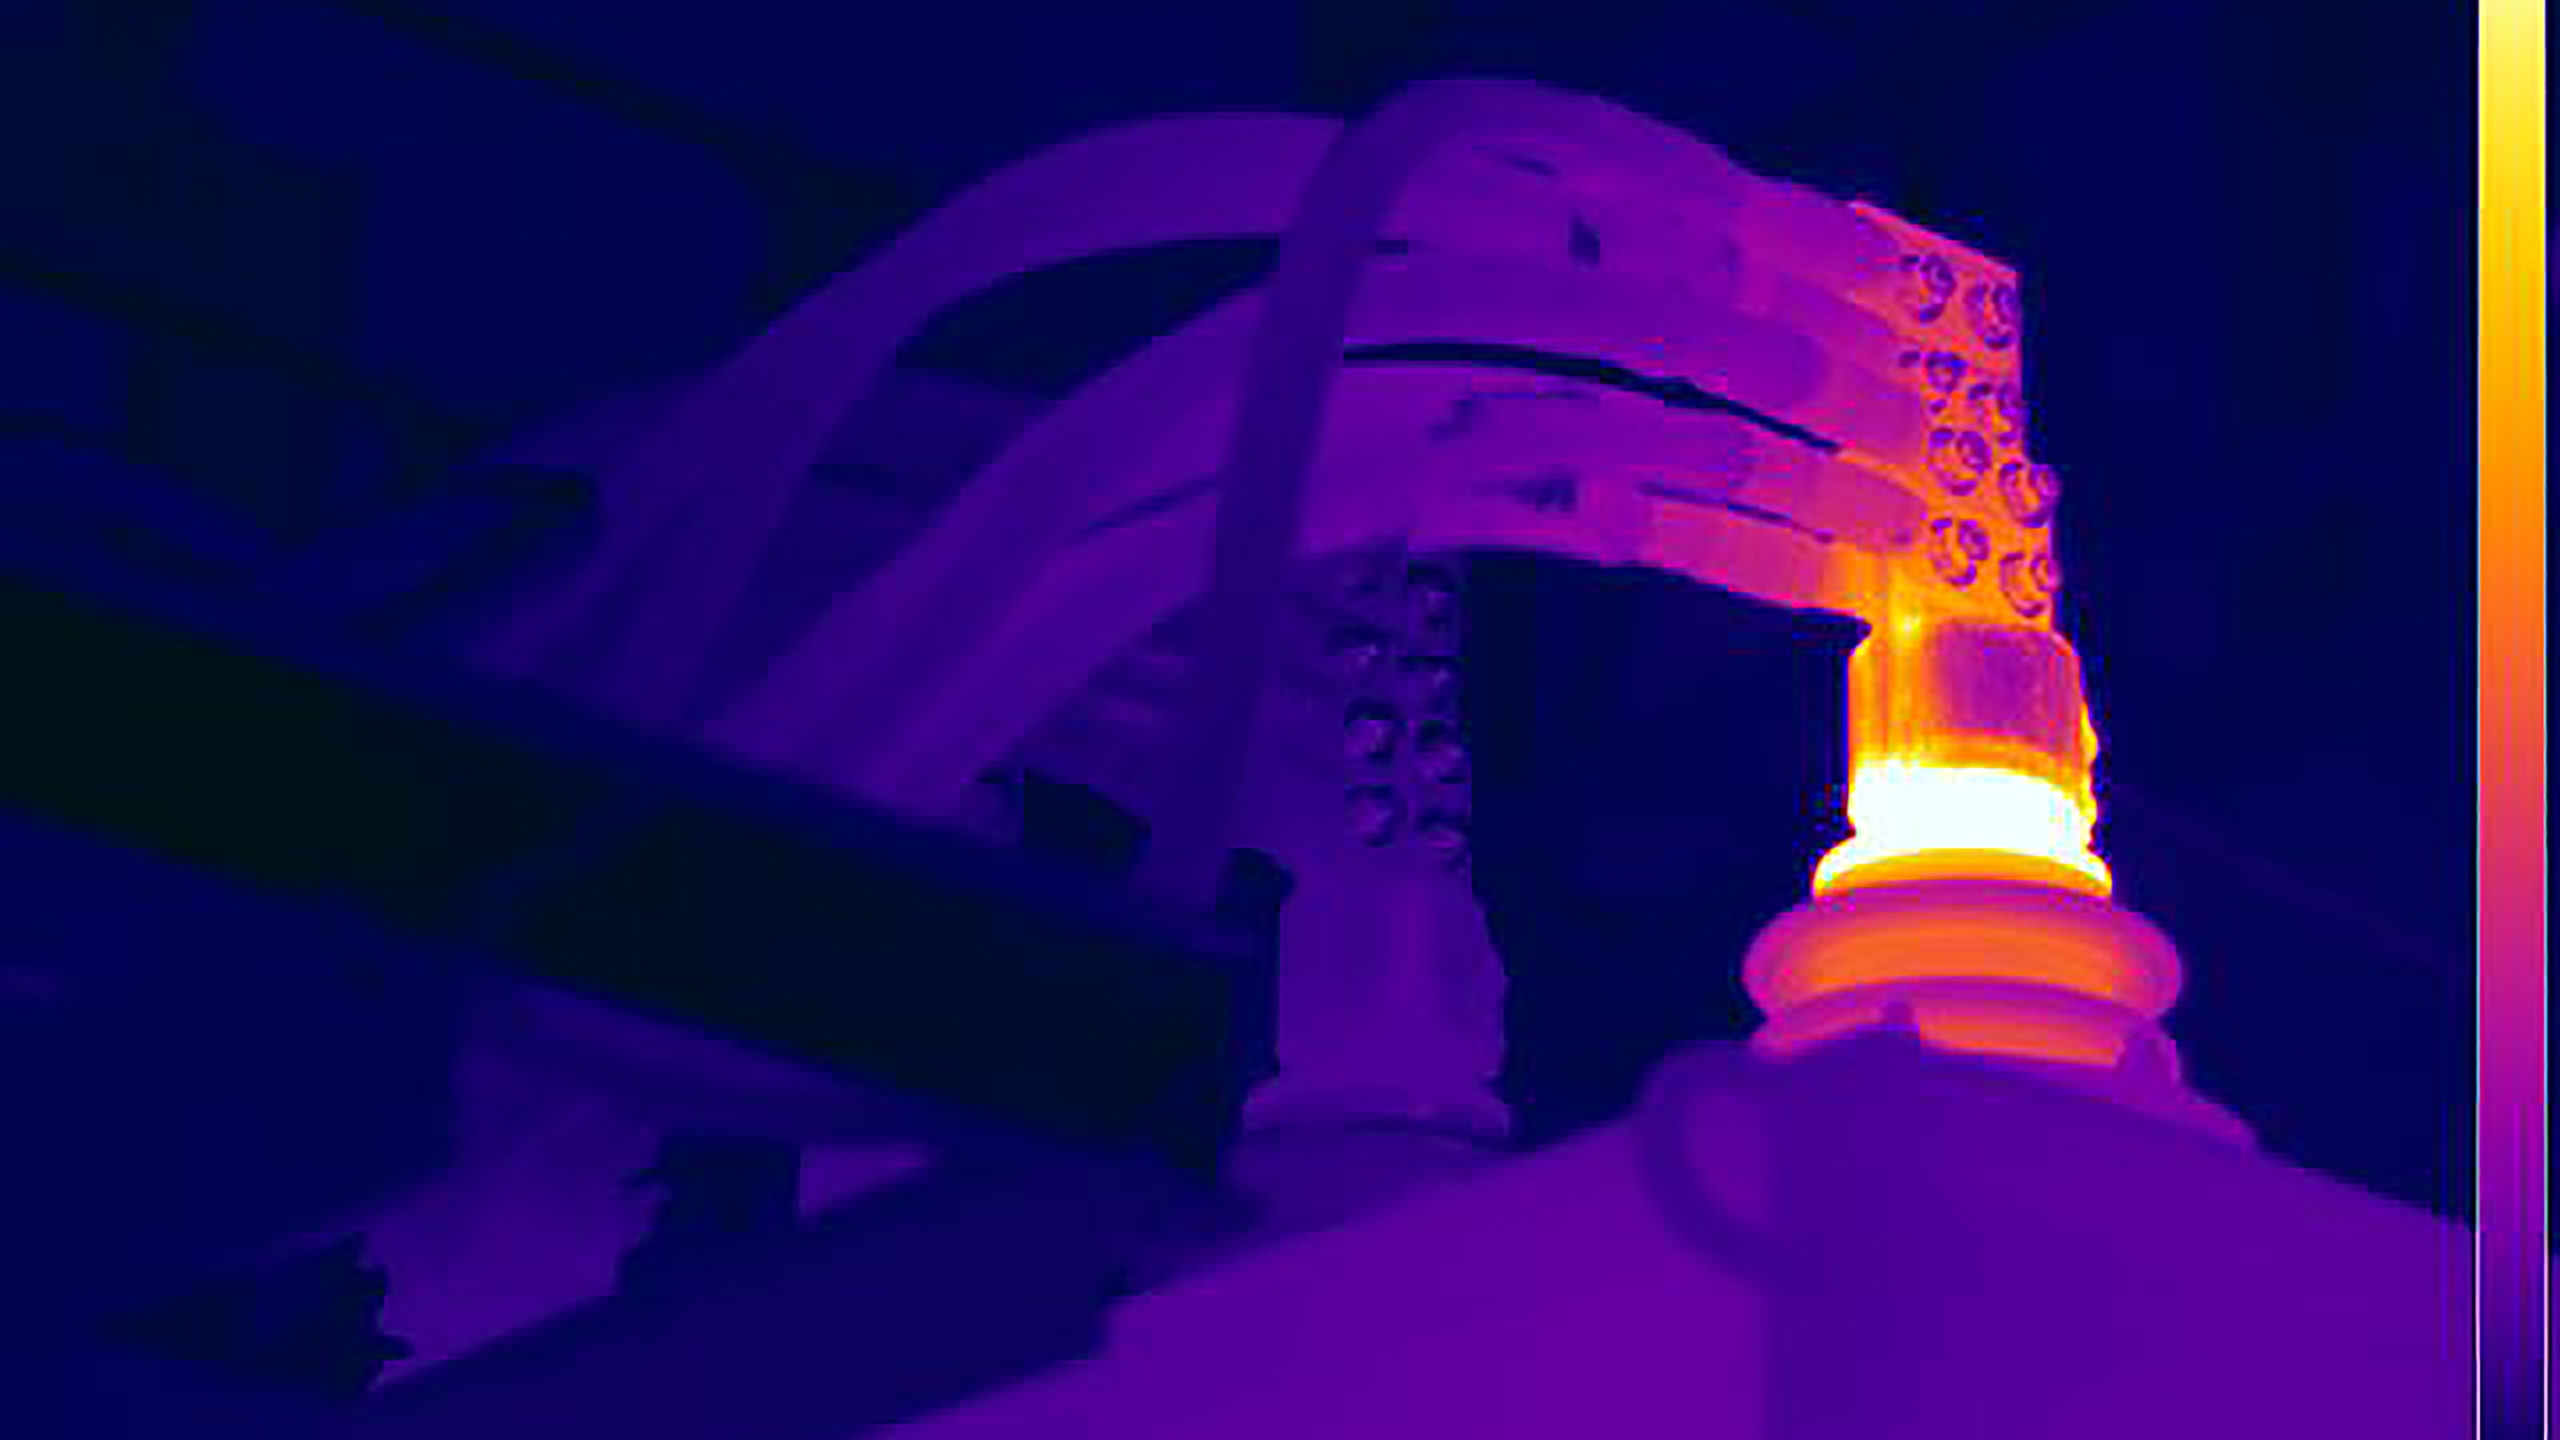 Transformer bushing - HSB thermography example